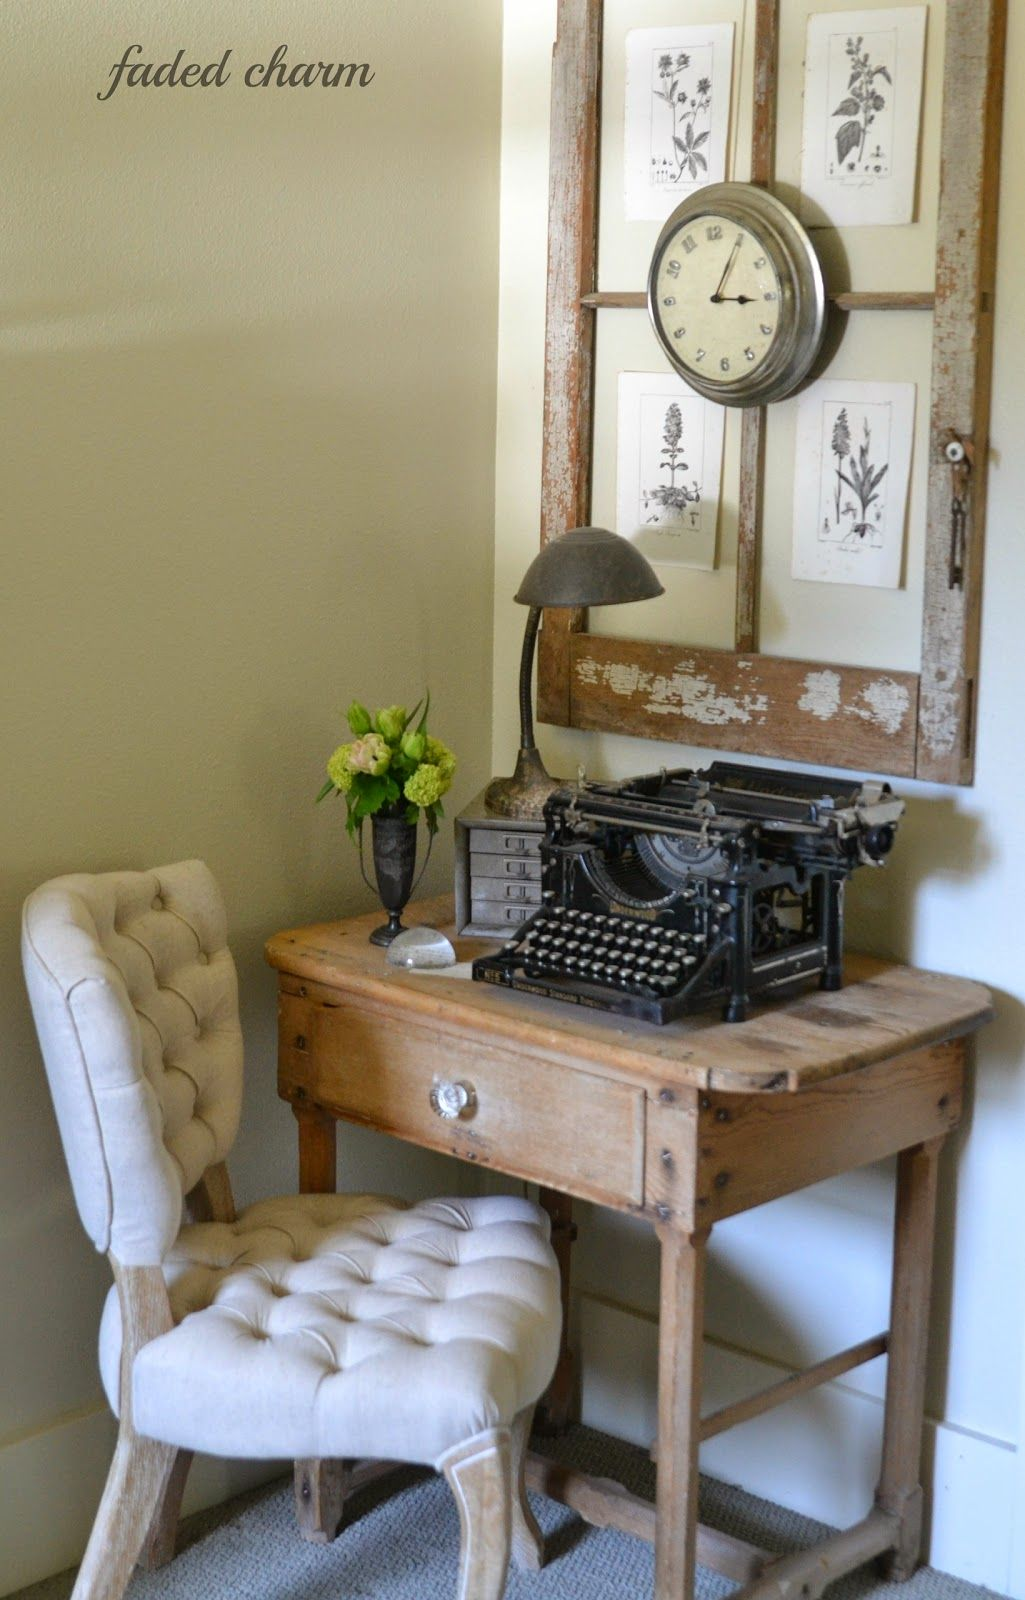 Desk charm with an old window frame